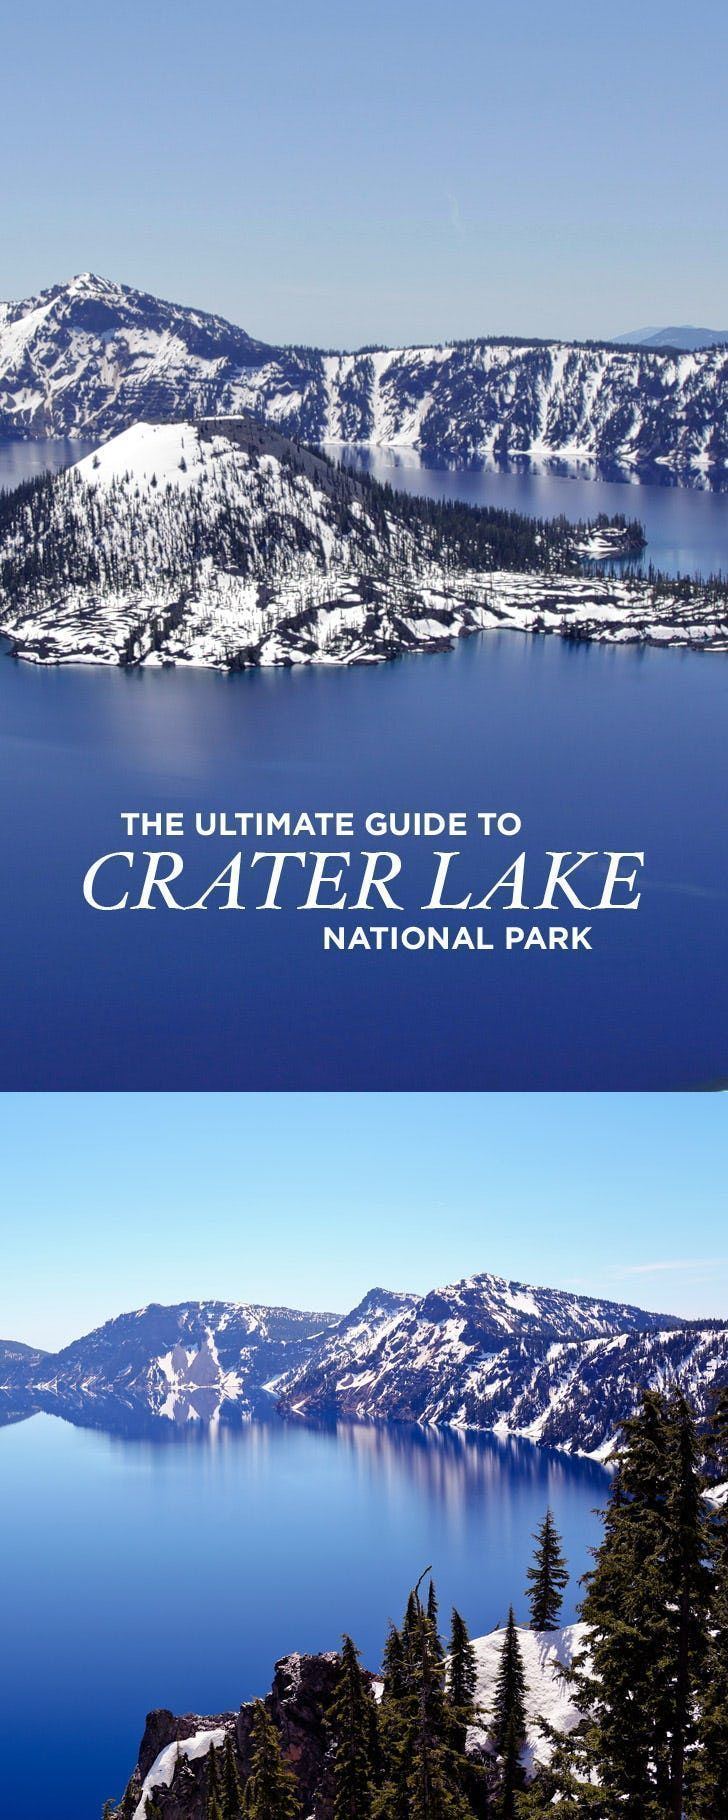 The Ultimate Guide to Crater Lake National Park Oregon #craterlakenationalpark The Ultimate Guide to Crater Lake National Park Oregon #craterlakeoregon The Ultimate Guide to Crater Lake National Park Oregon #craterlakenationalpark The Ultimate Guide to Crater Lake National Park Oregon #craterlakenationalpark The Ultimate Guide to Crater Lake National Park Oregon #craterlakenationalpark The Ultimate Guide to Crater Lake National Park Oregon #craterlakeoregon The Ultimate Guide to Crater Lake Nati #craterlakenationalpark